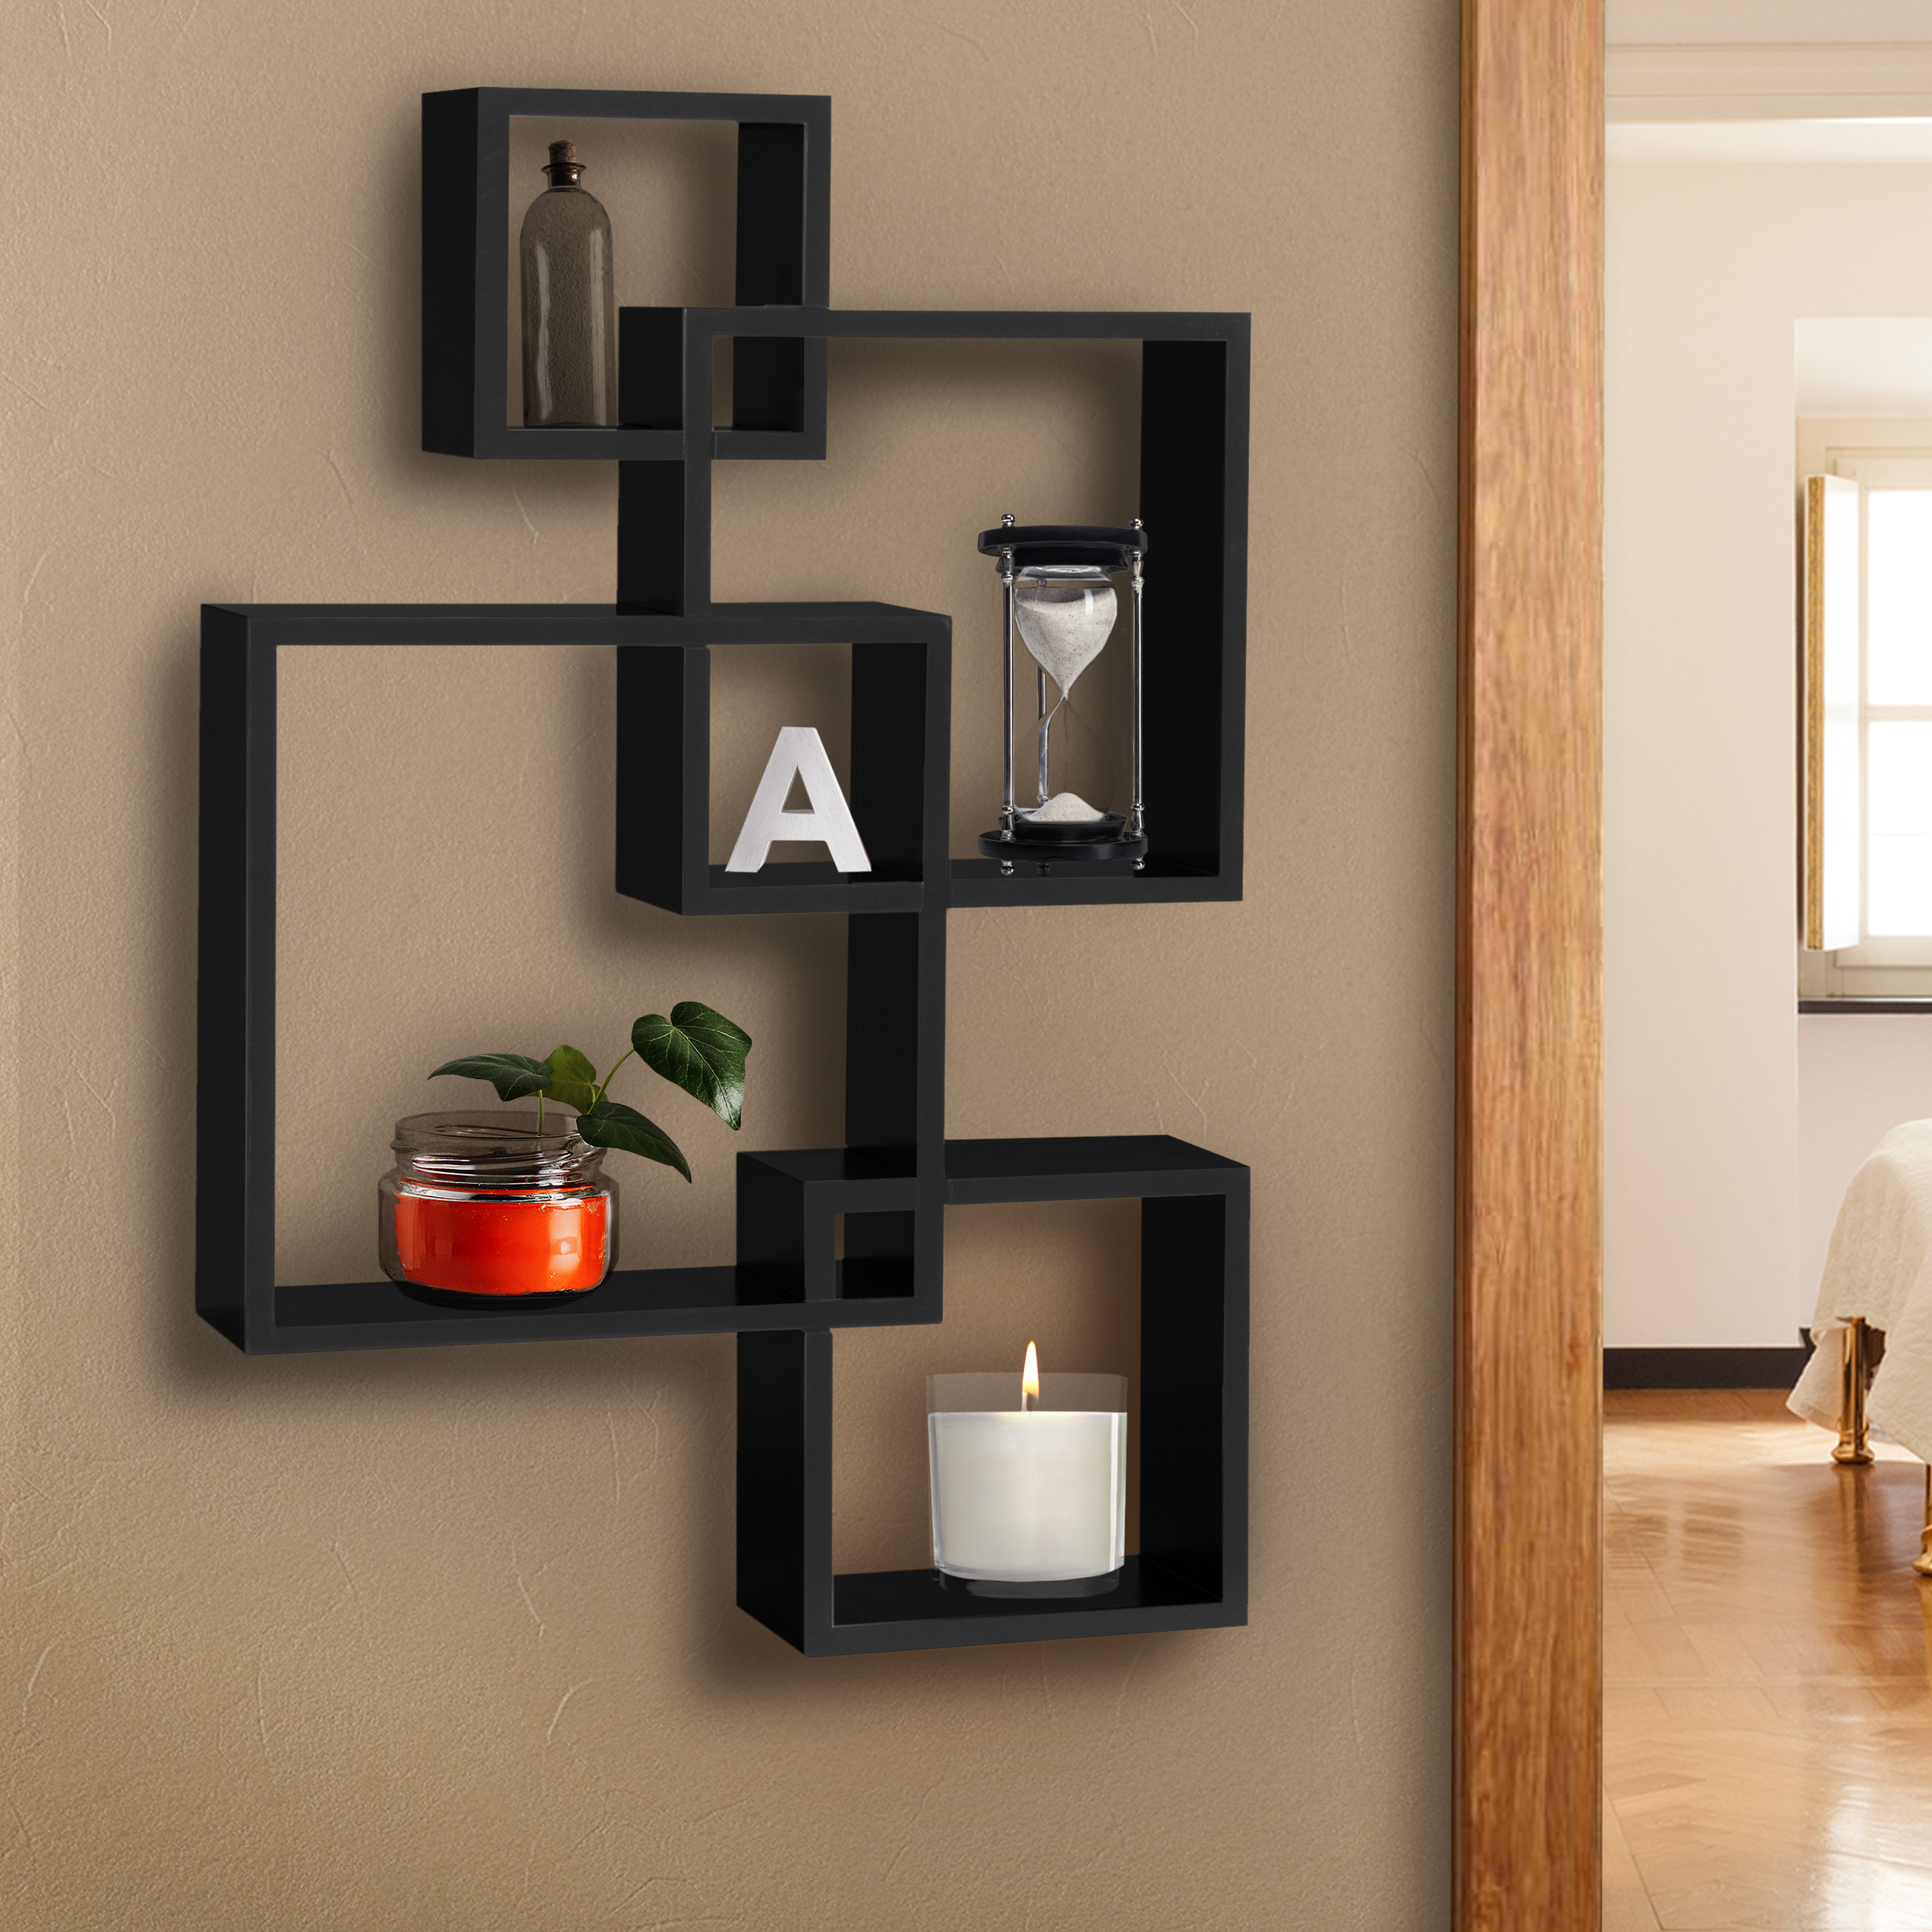 BCP Intersecting Squares Floating Shelf Wall Mounted Home Decor Furniture    Walmart com. BCP Intersecting Squares Floating Shelf Wall Mounted Home Decor